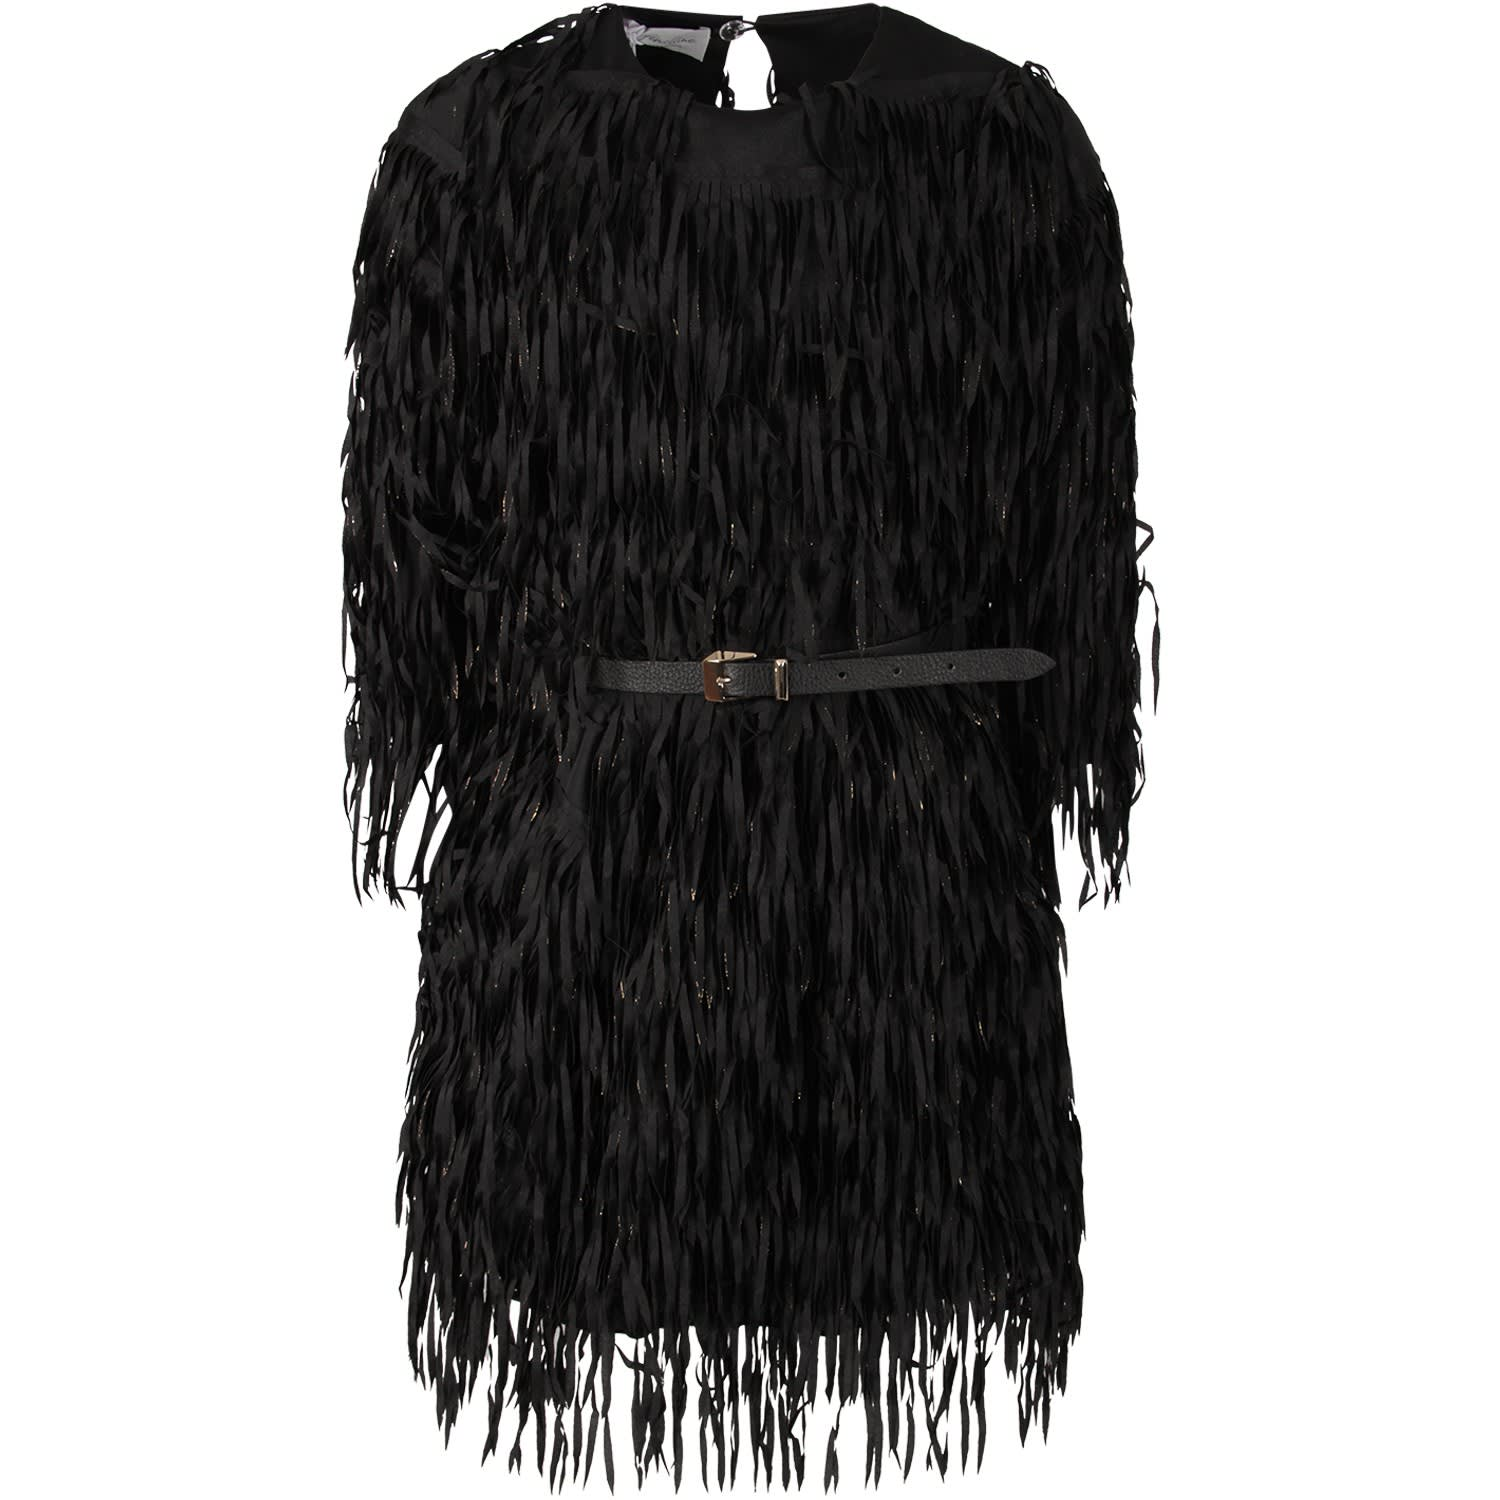 Le Gemelline by Feleppa Black Girl argentea Dress With Fringes